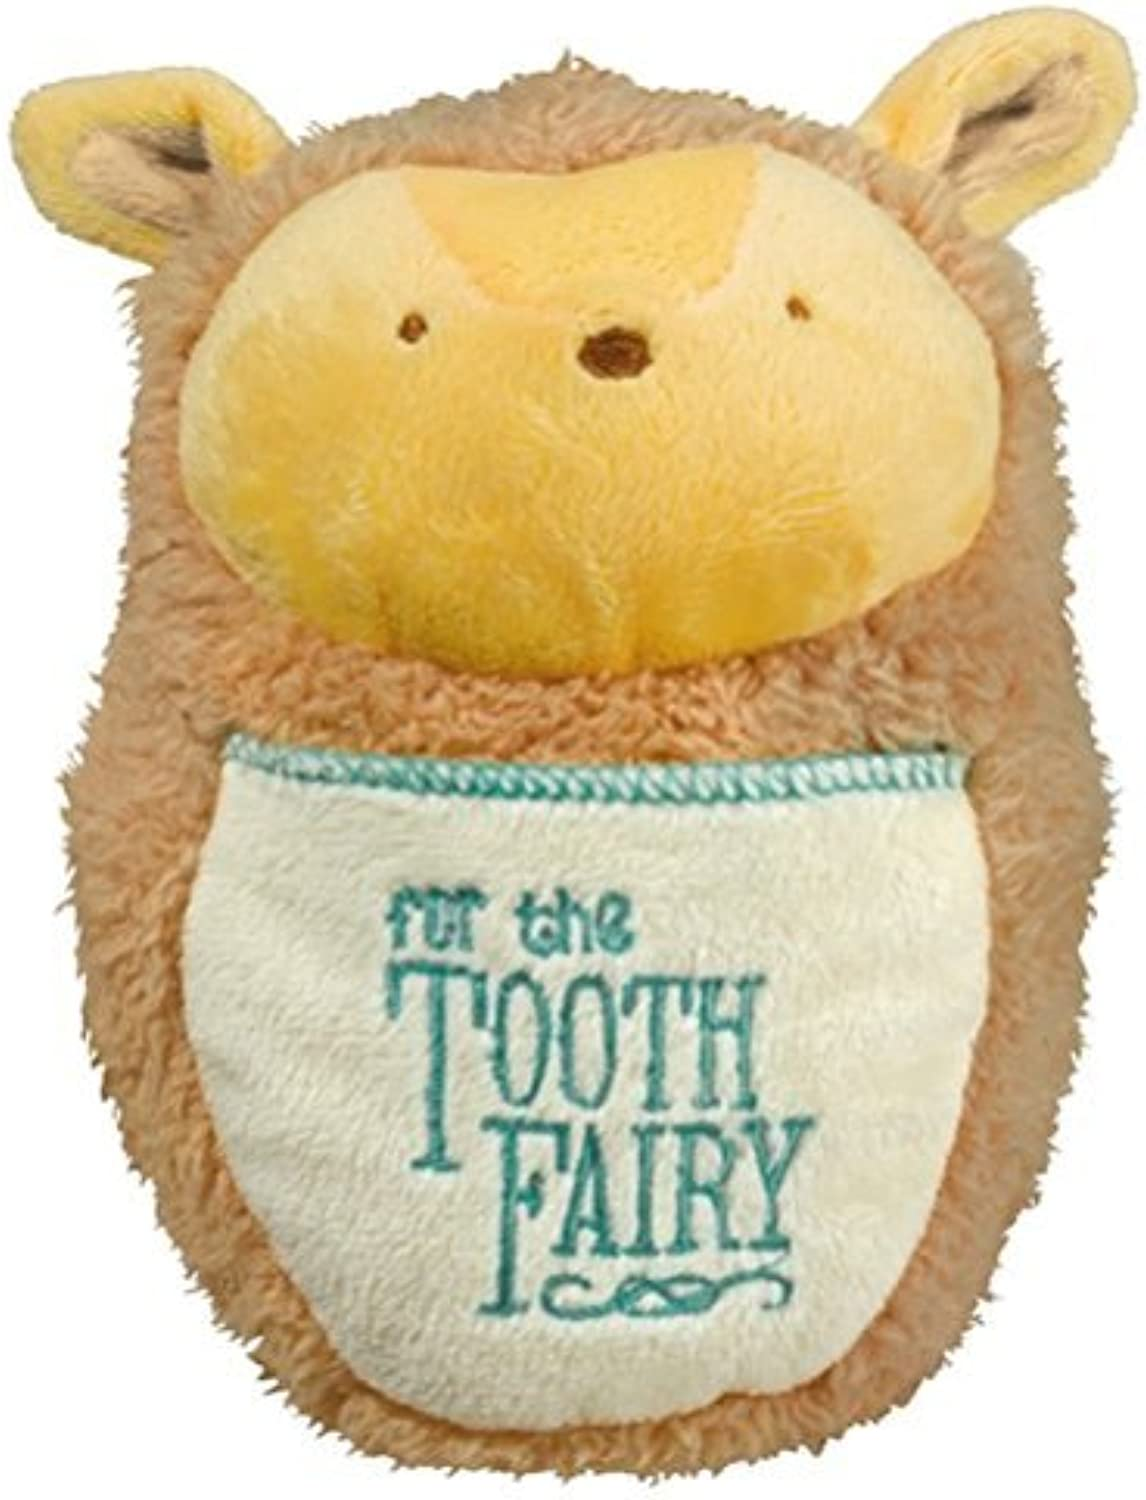 Grasslands Road Animal Tooth Fairy Plush Pillow Toys Hedgehog by Grasslands Road